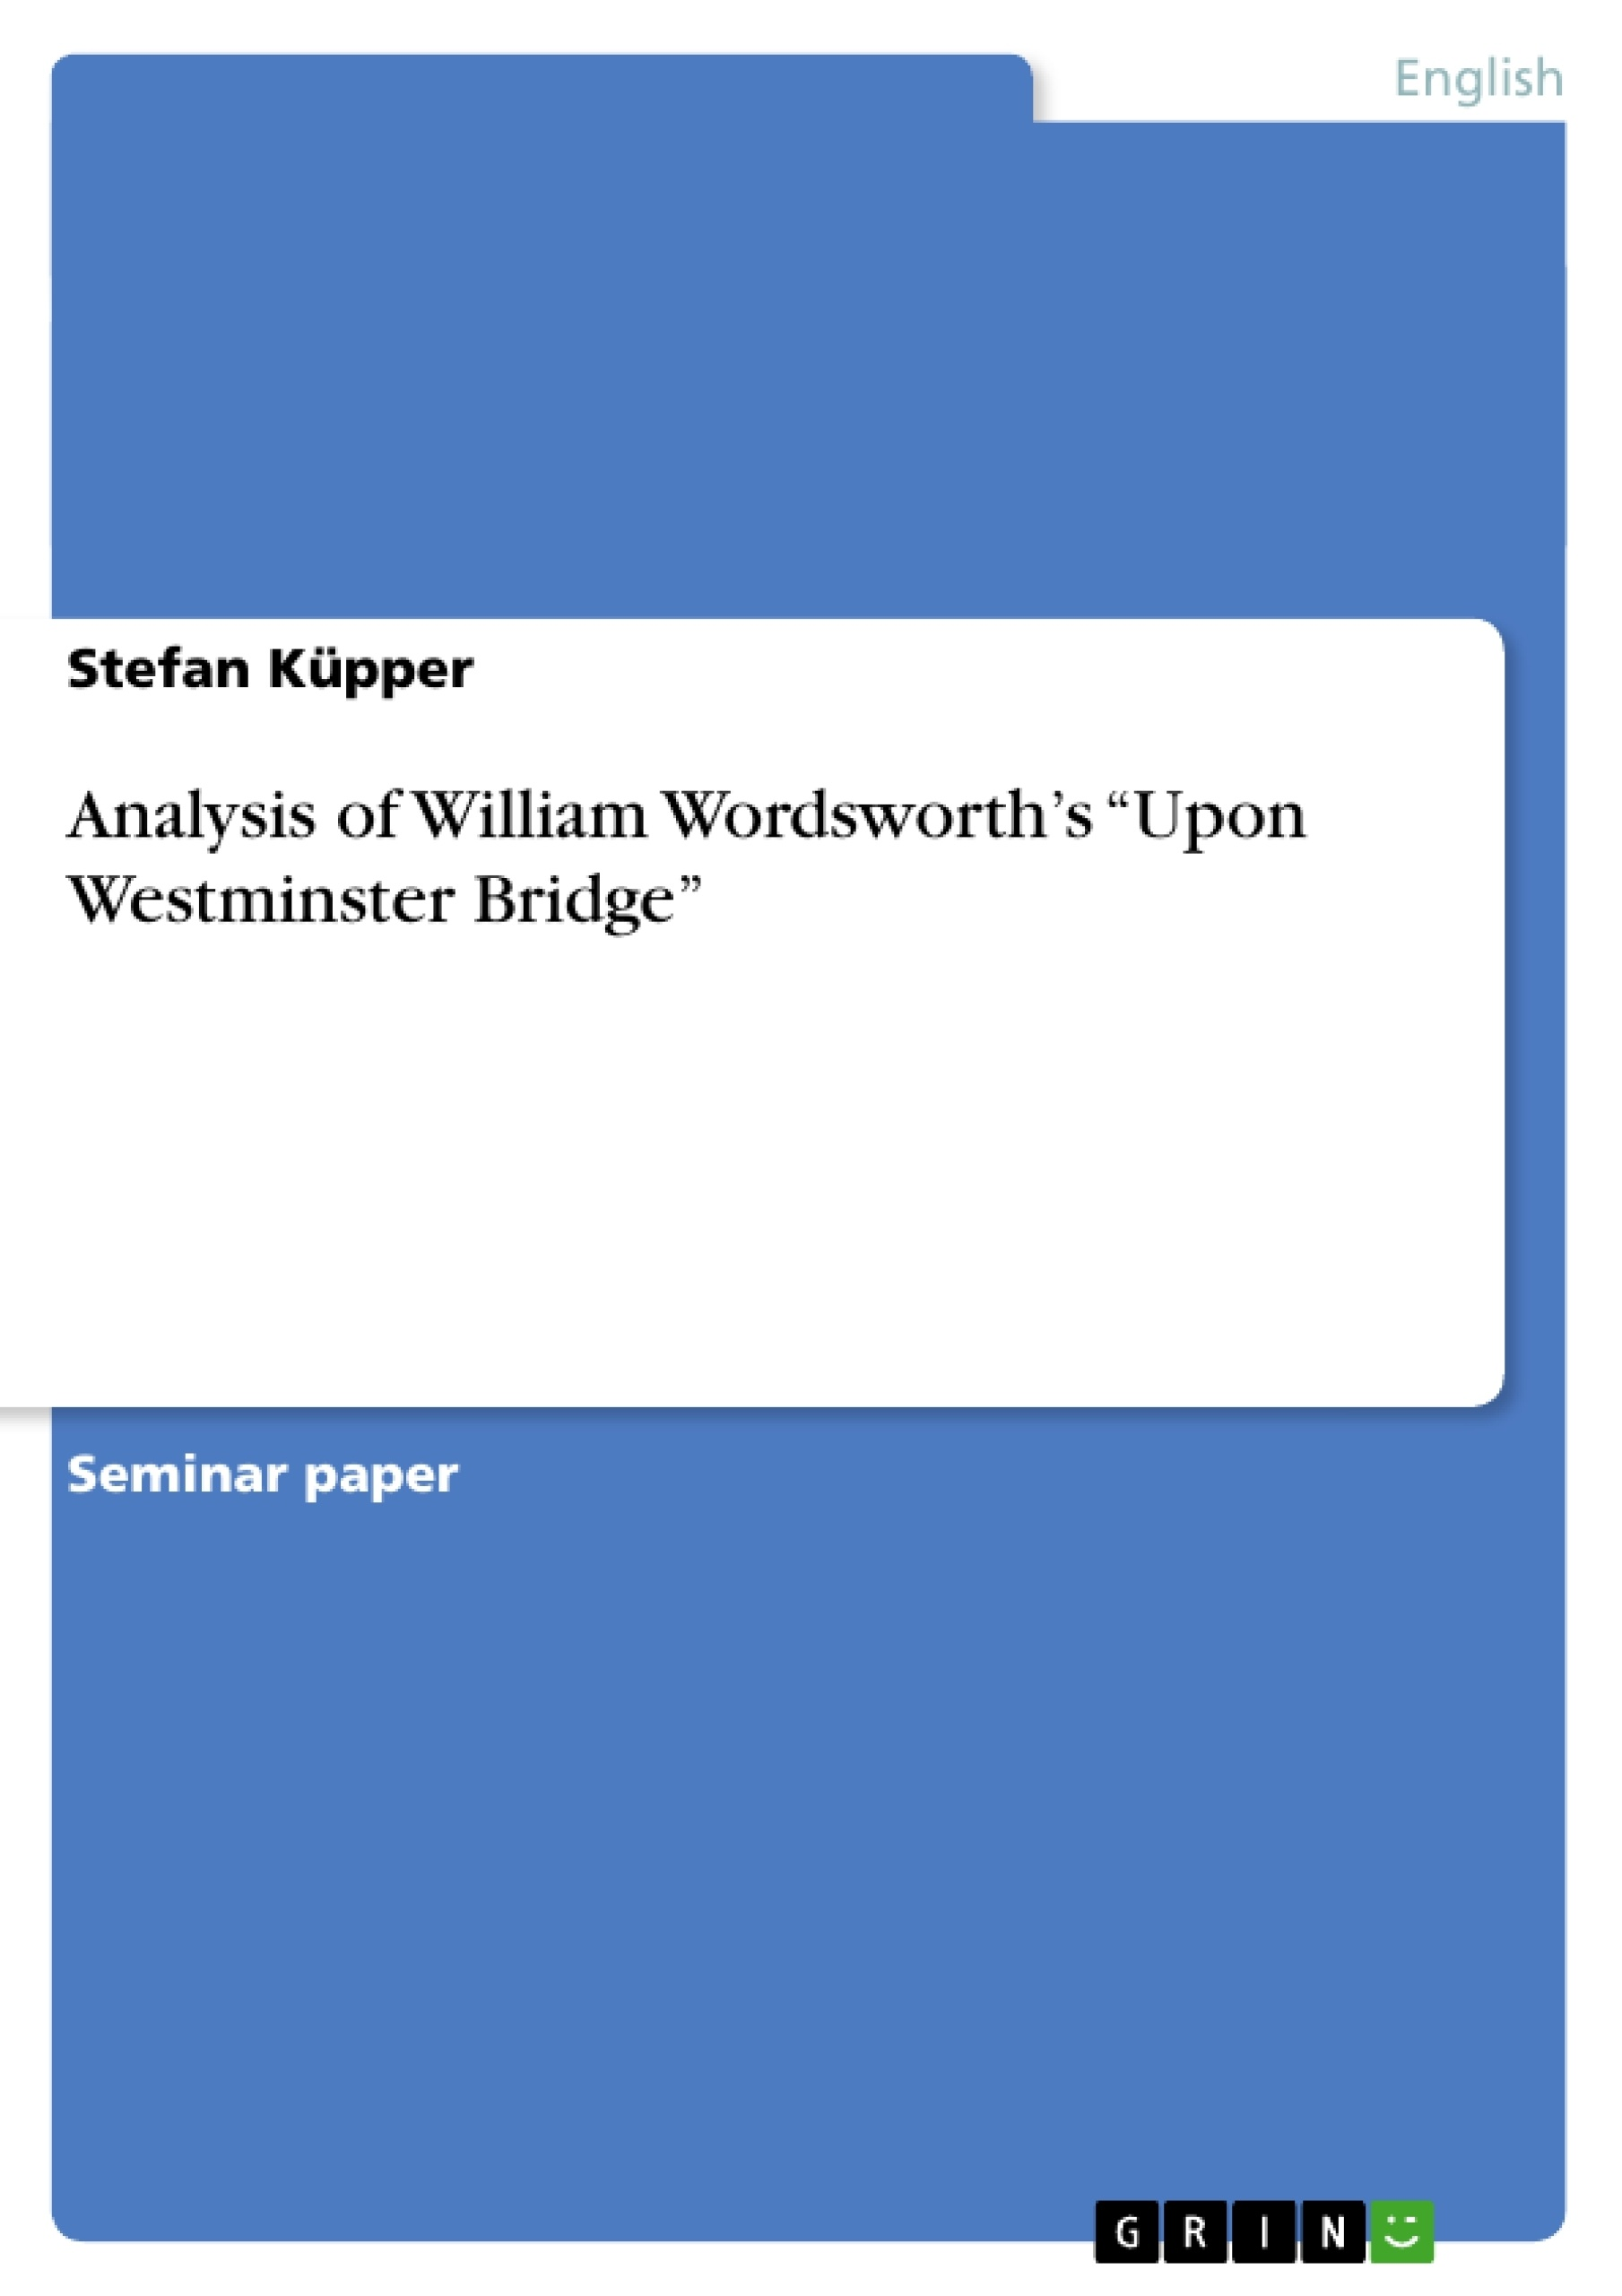 analysis of william wordsworth s upon westminster bridge earn money and win an iphone 7